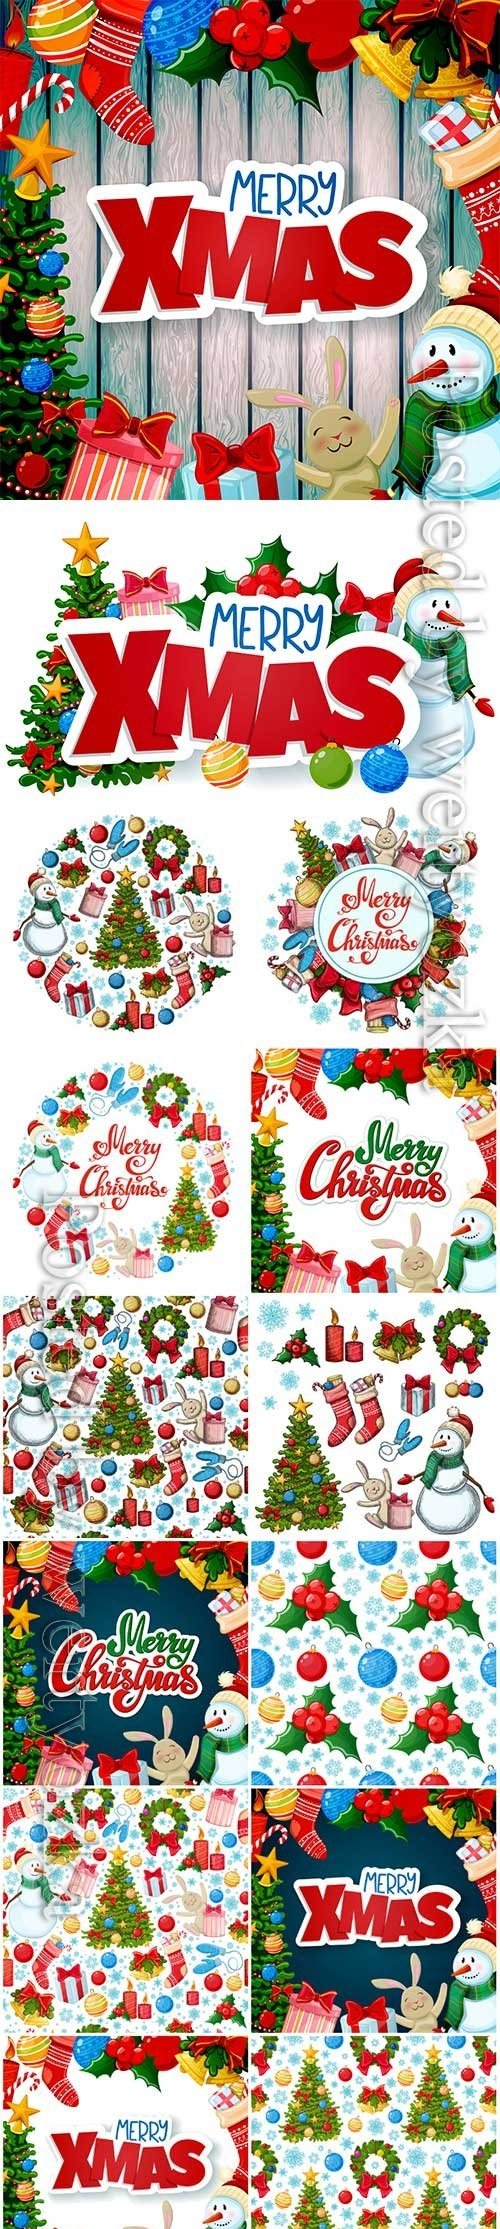 Christmas greeting card, merry xmas vector decorations